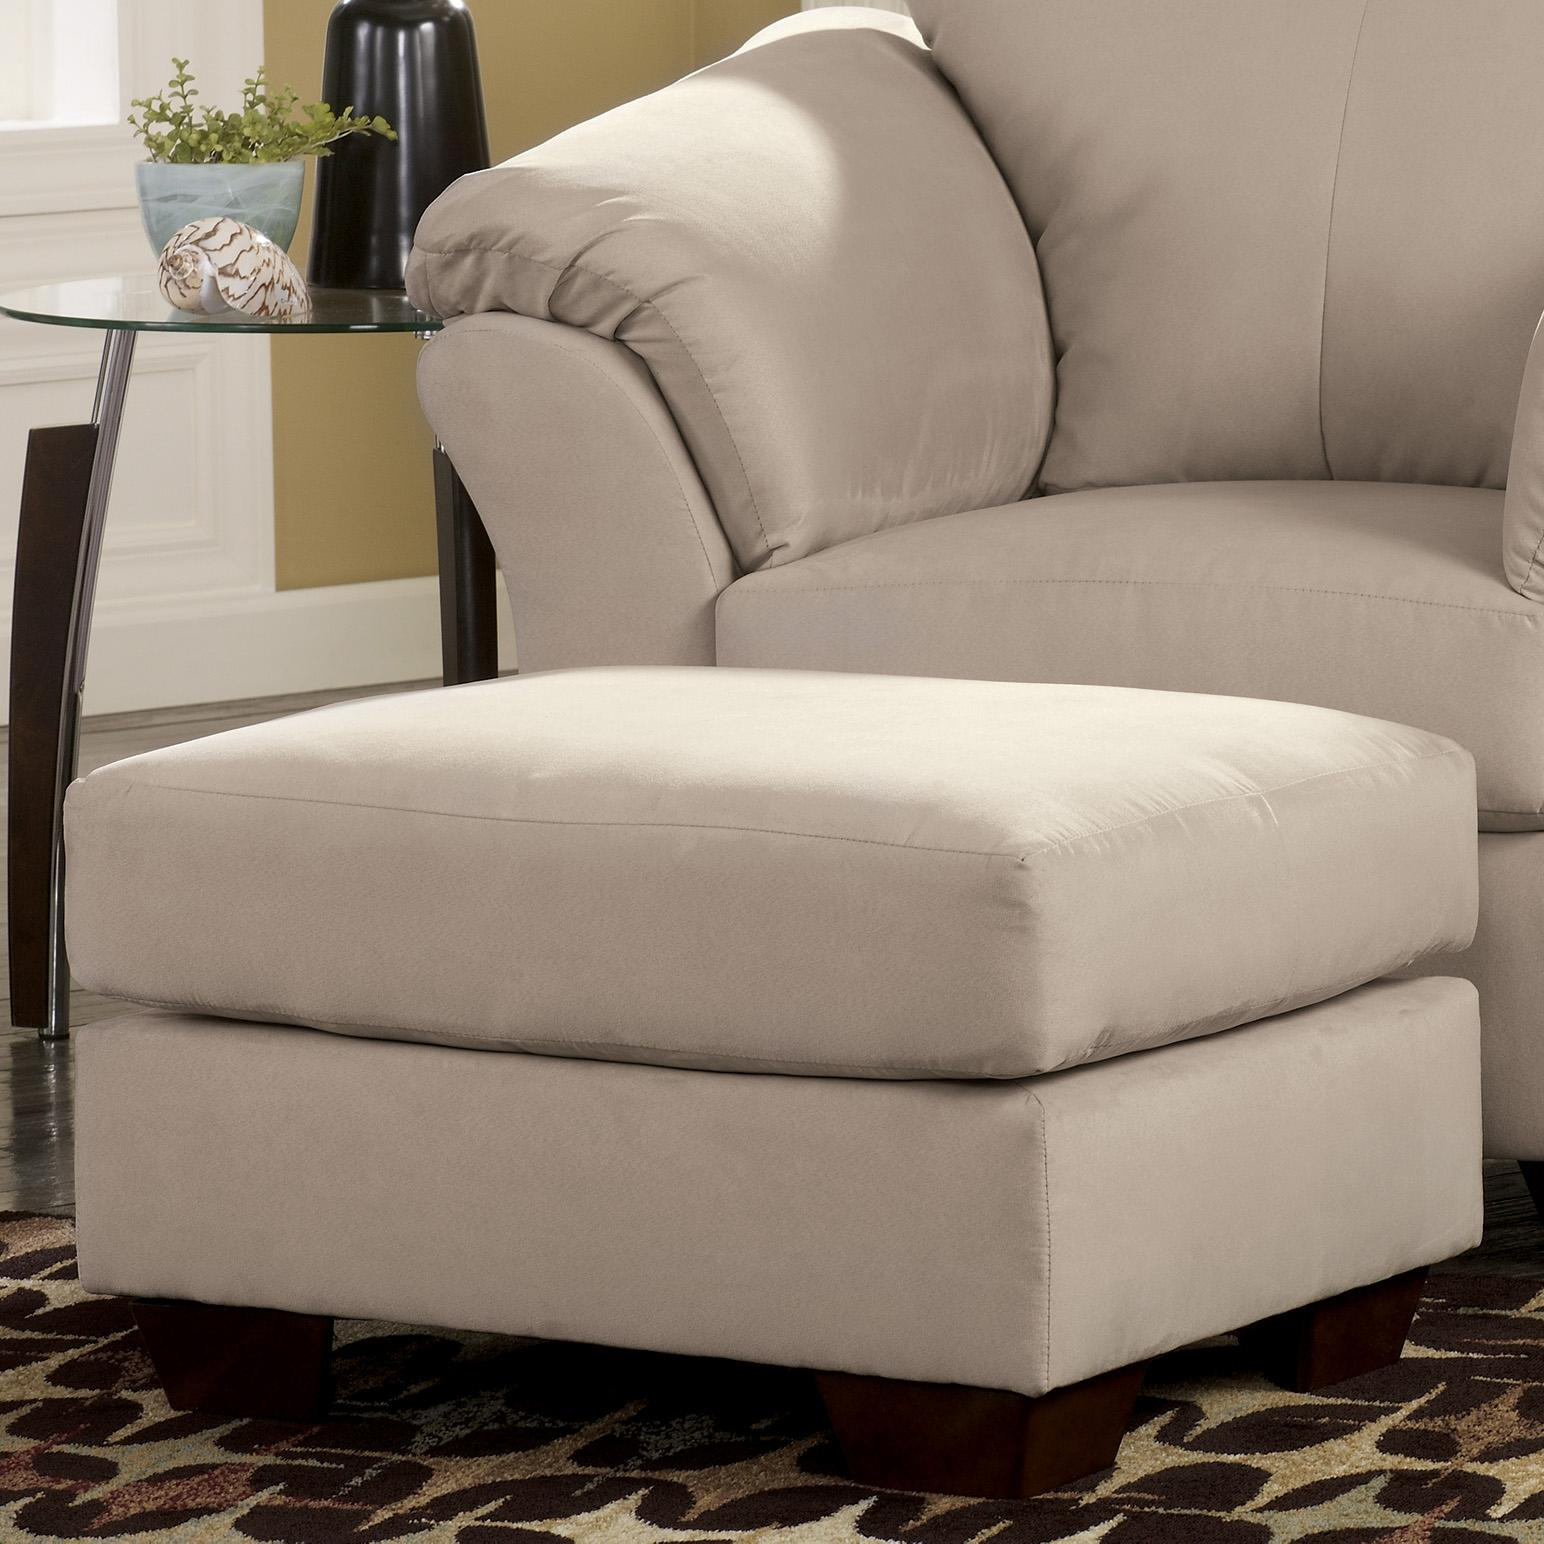 ashley chair and ottoman office lumbar support mesh signature design darcy stone 7500014 contemporary